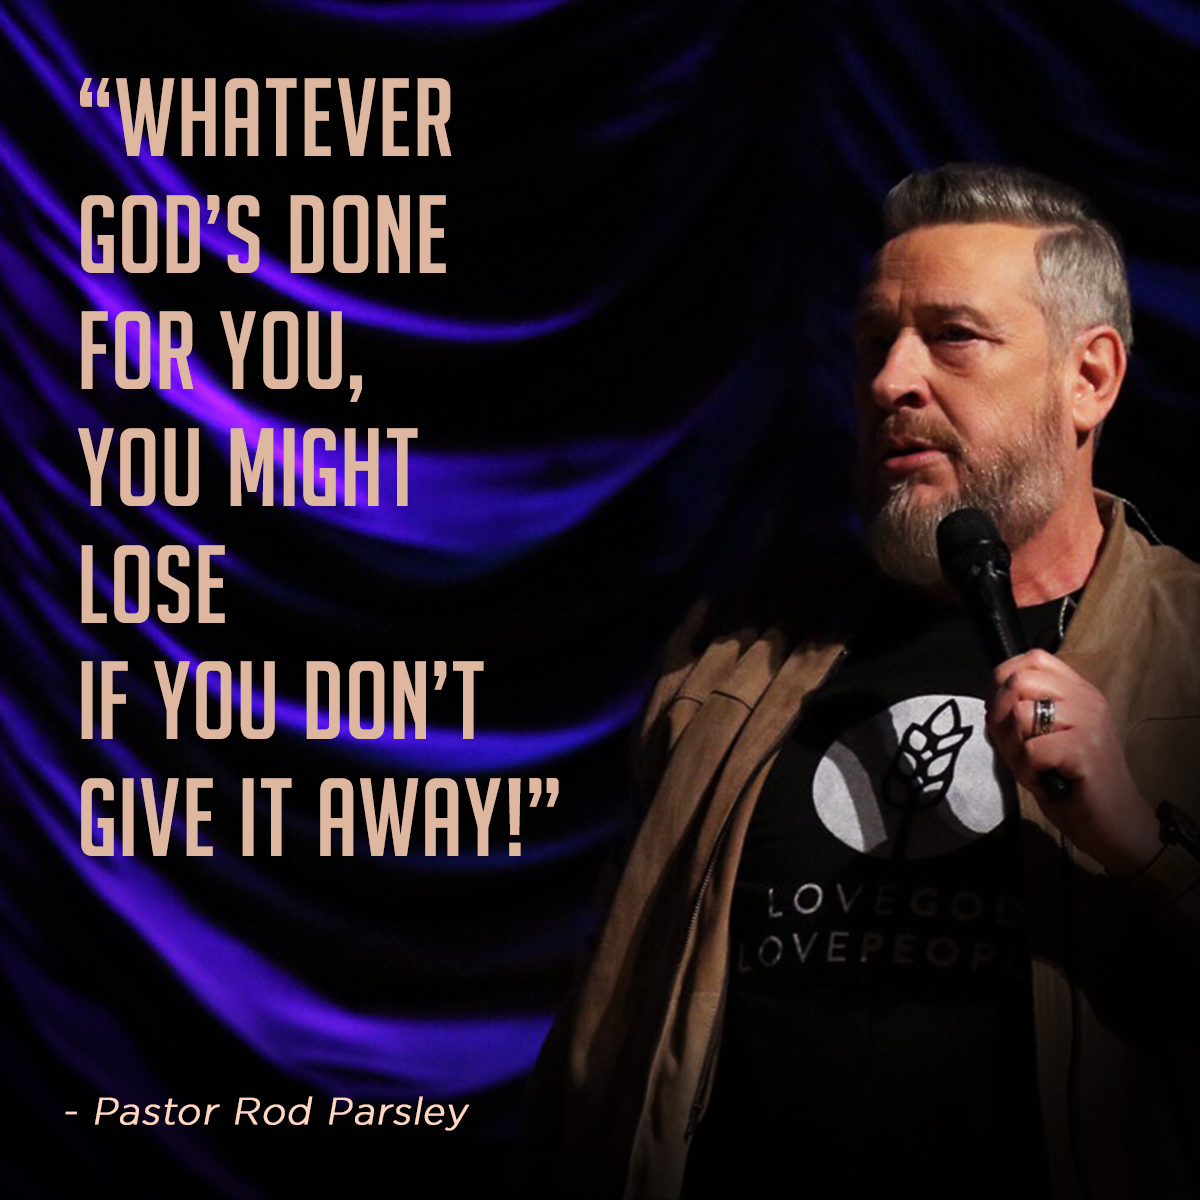 """Whatever God's done for you, you might lose if you don't give it away!"" – Pastor Rod Parsley"